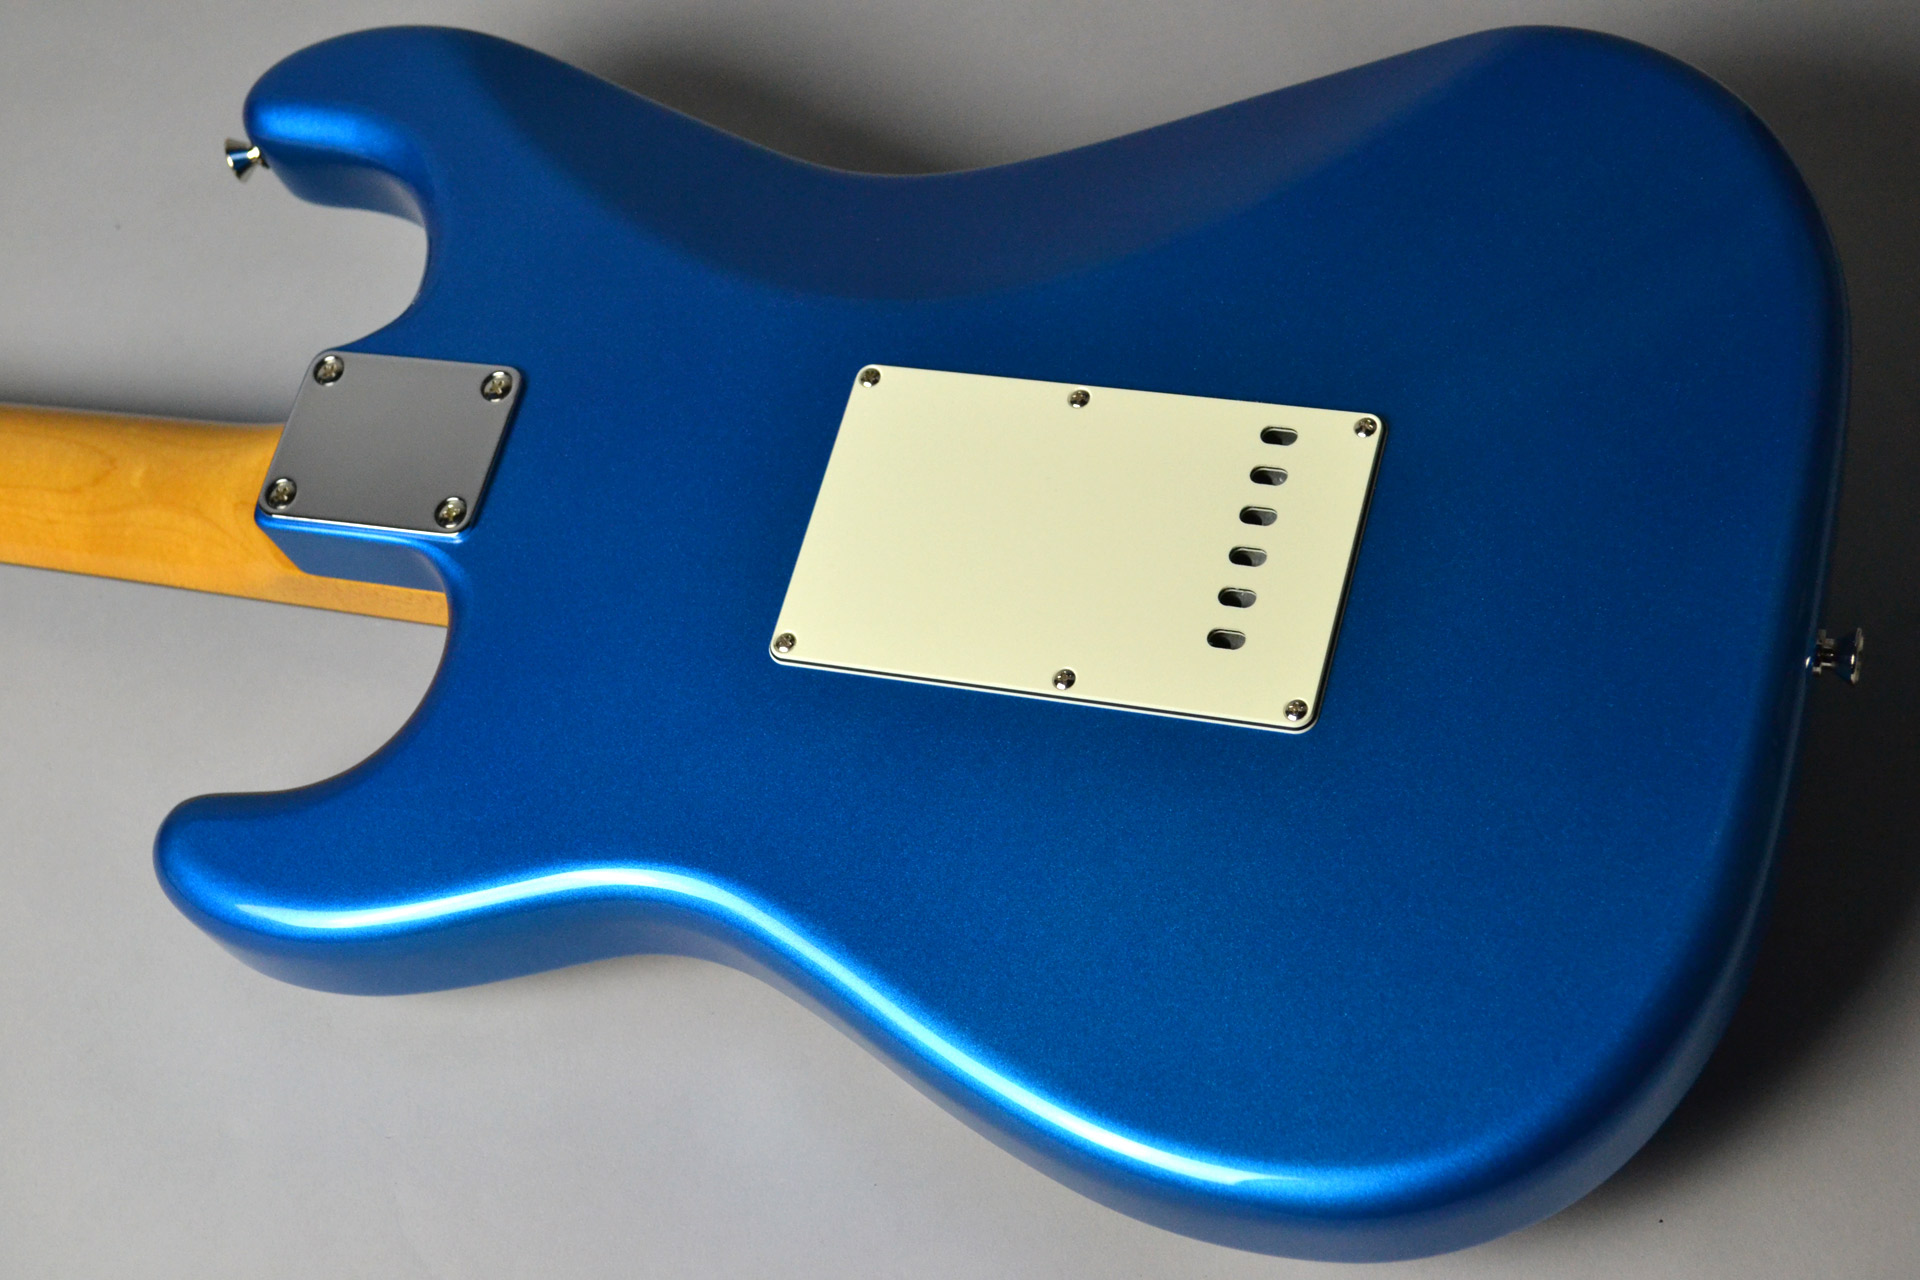 MADE IN JAPAN TRADITIONAL 60S STRATOCASTER Candy Blueのボディバック-アップ画像